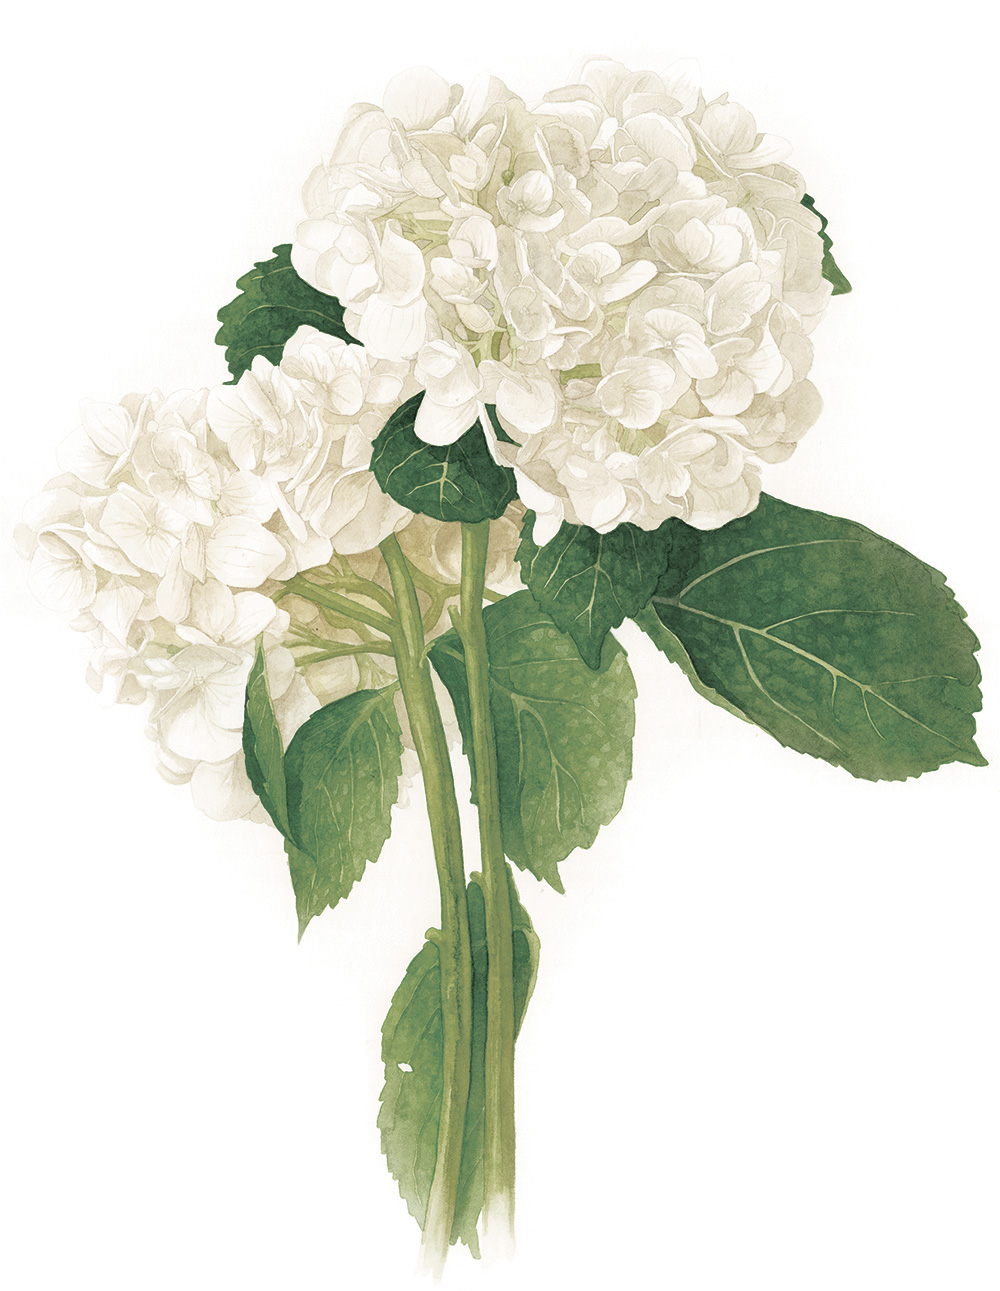 Hydrangea macrophylla botanical watercolour by Amanda Farquharson